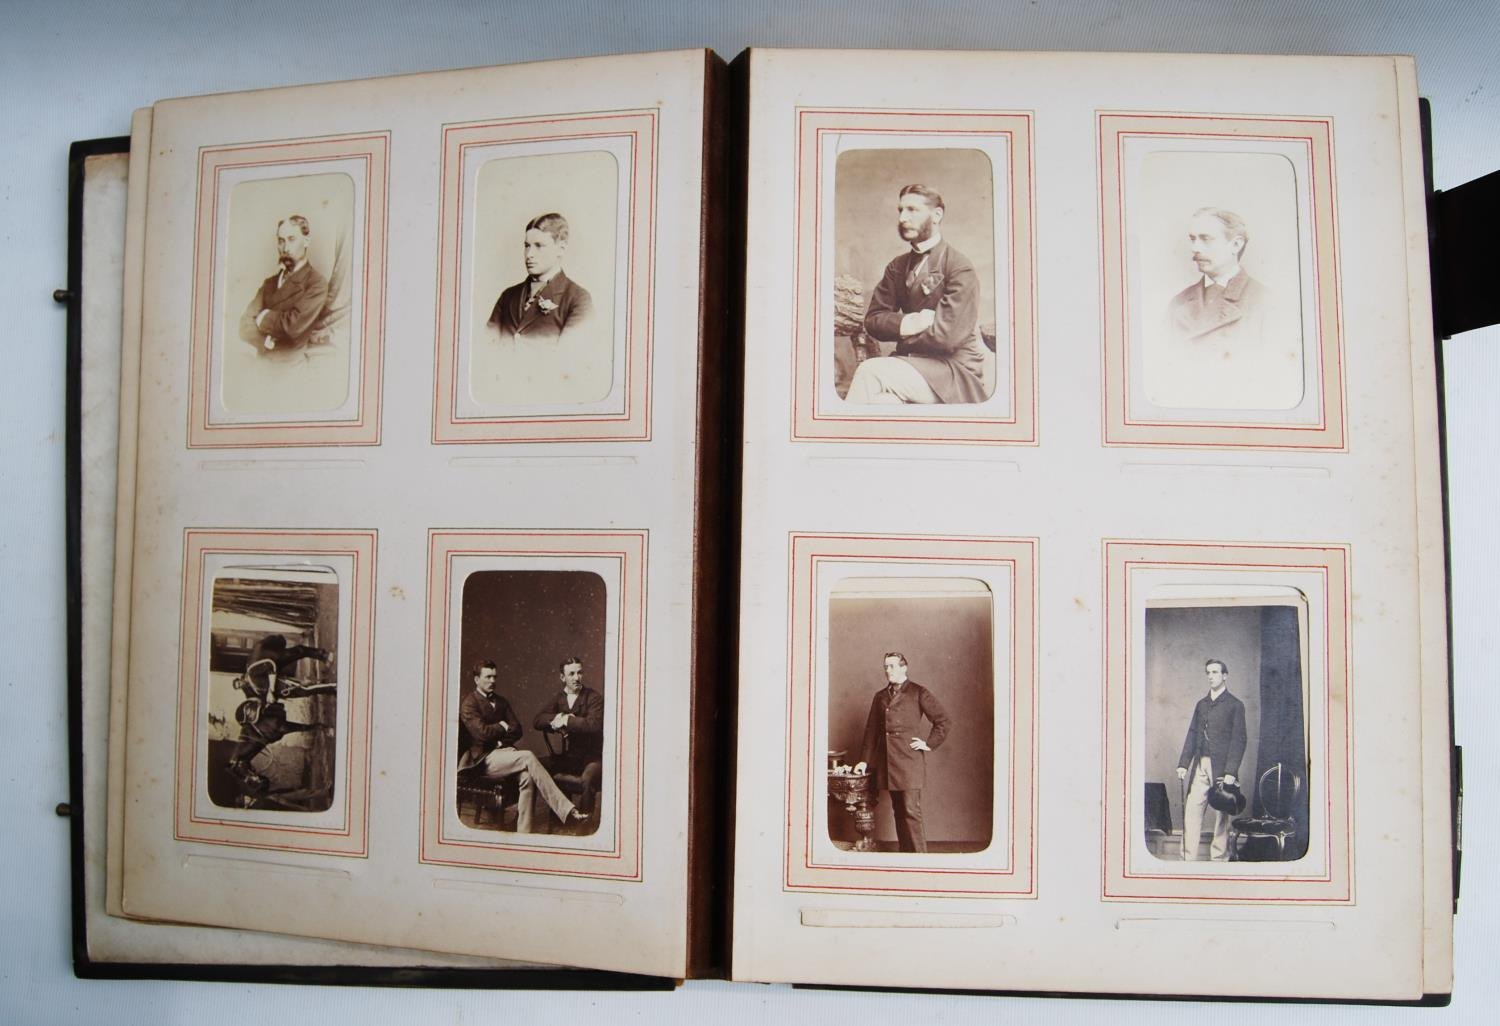 Victorian photograph album belong to Harden Burnley, signed 1870, comprising of royalty, officers